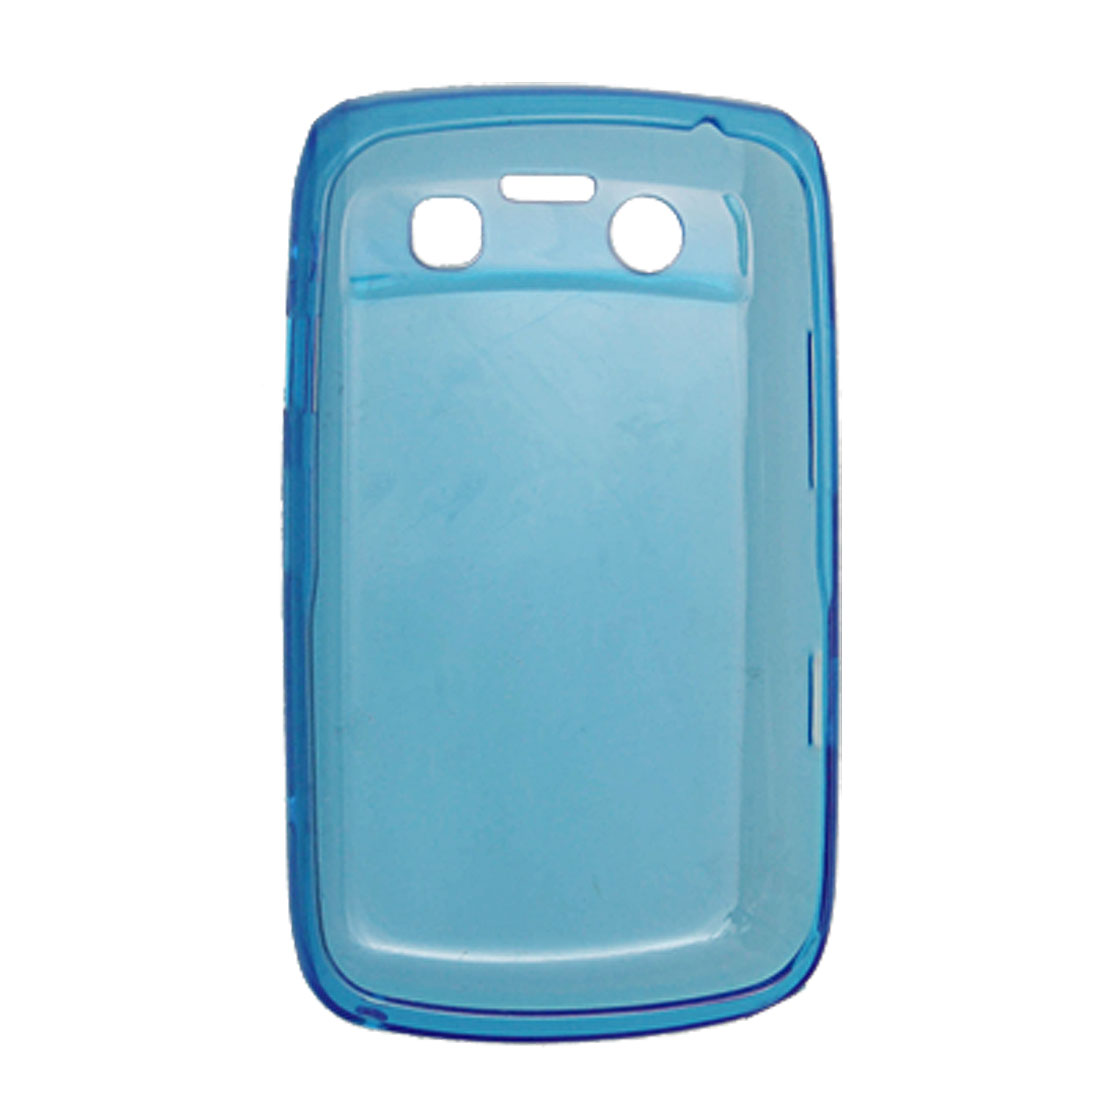 Blue Cover Phone Soft Plastic Cell Case for BlackBerry 9700